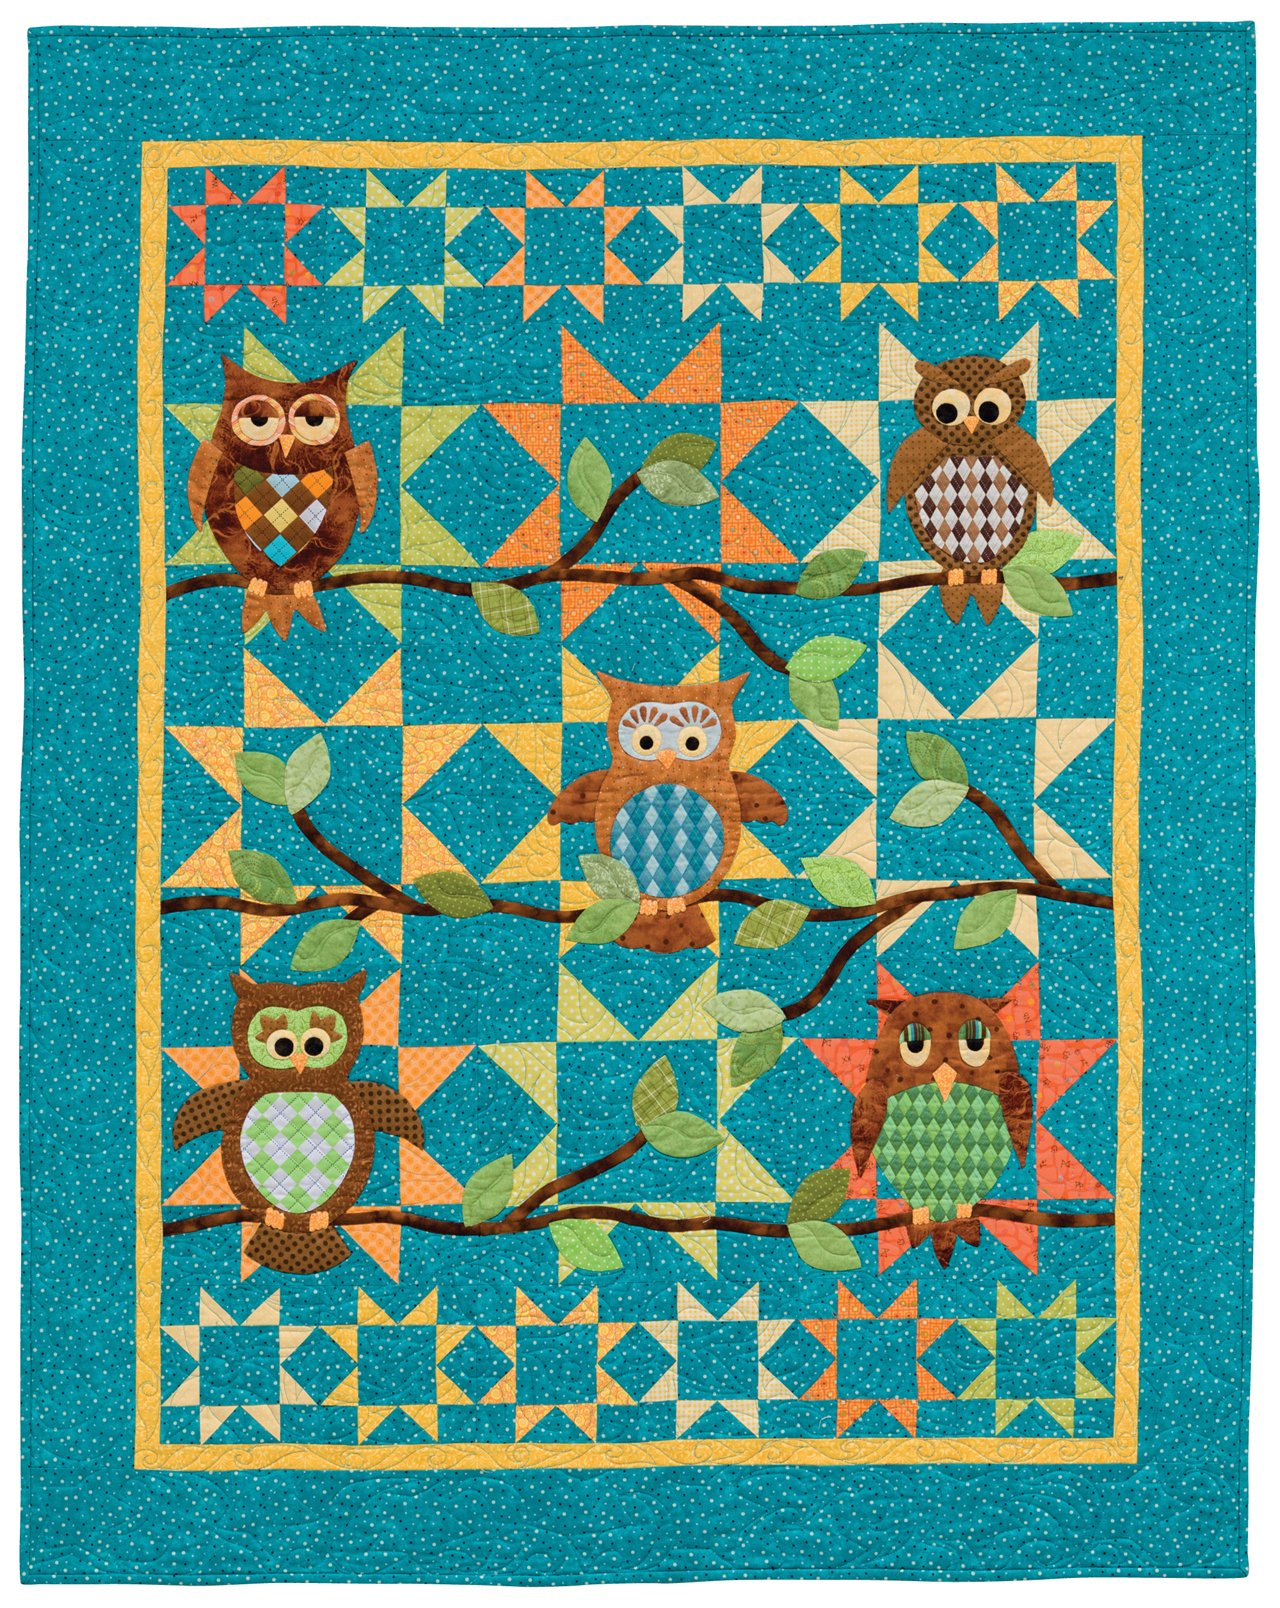 flowers  Crib quilt with appliqued animals Baby Quilt with appliqued animals  Newborn baby quilt with rabbit bird flowers and hearts